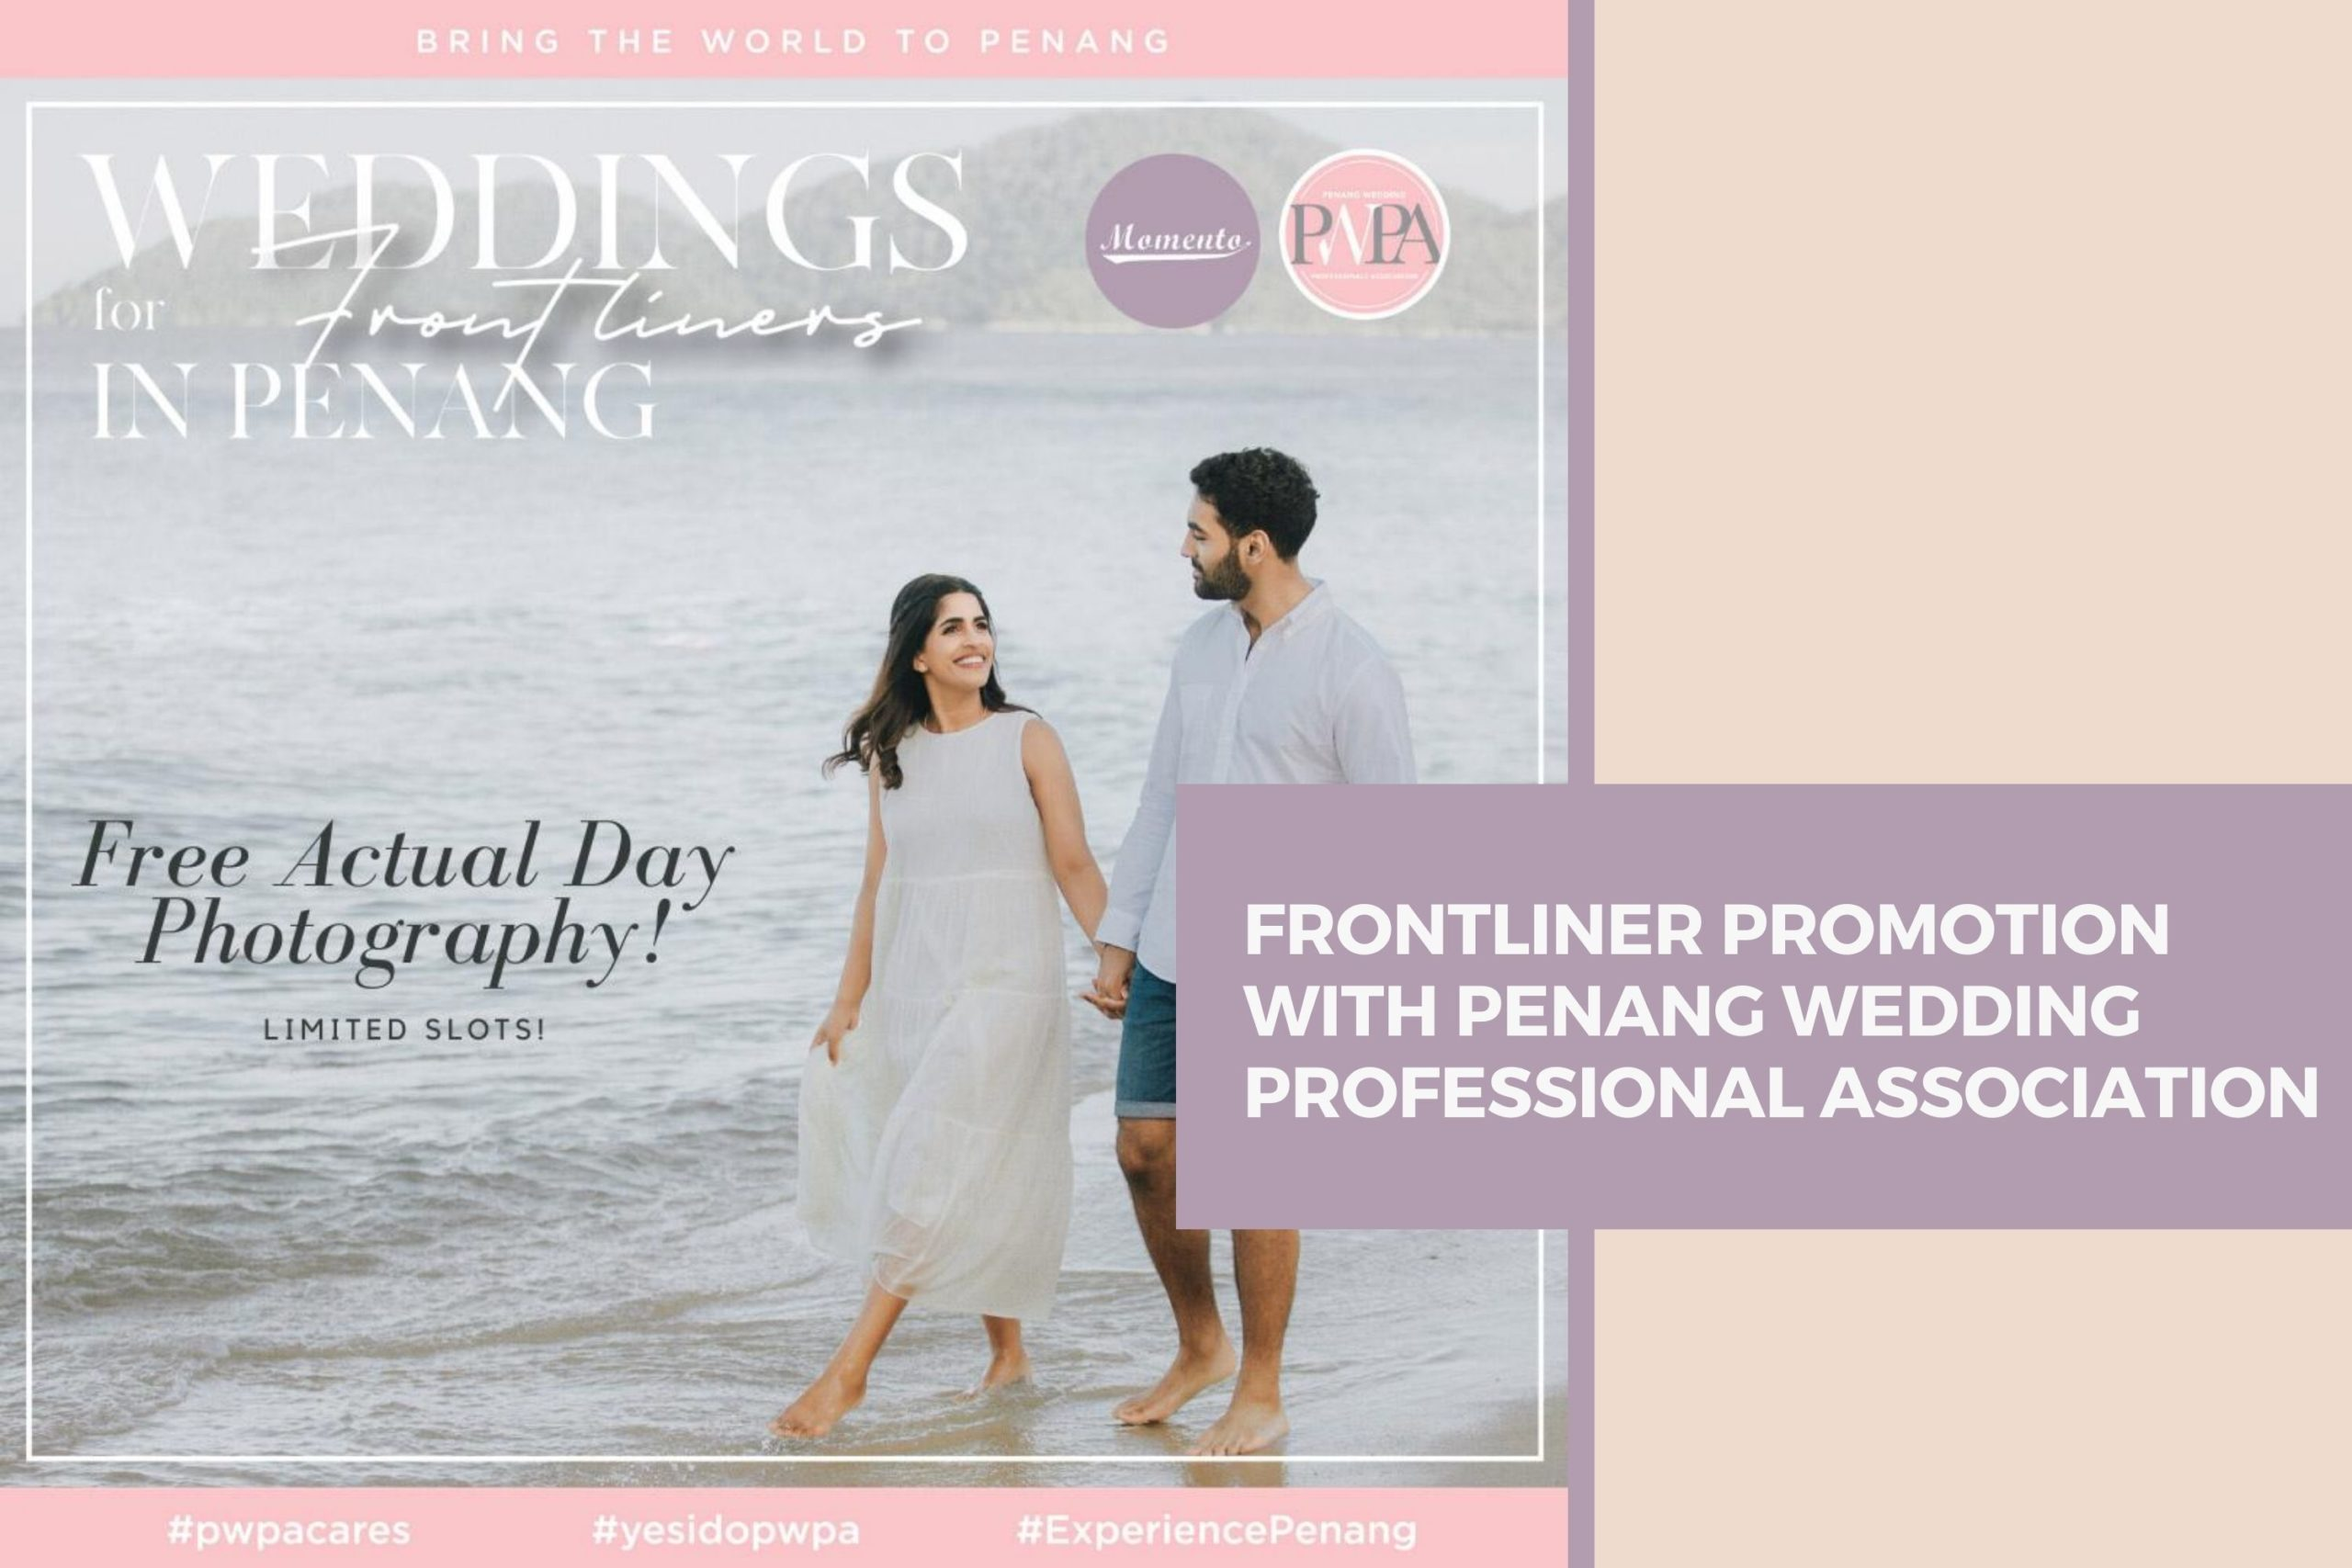 Frontliner Promotion with Penang Wedding Professionals Association